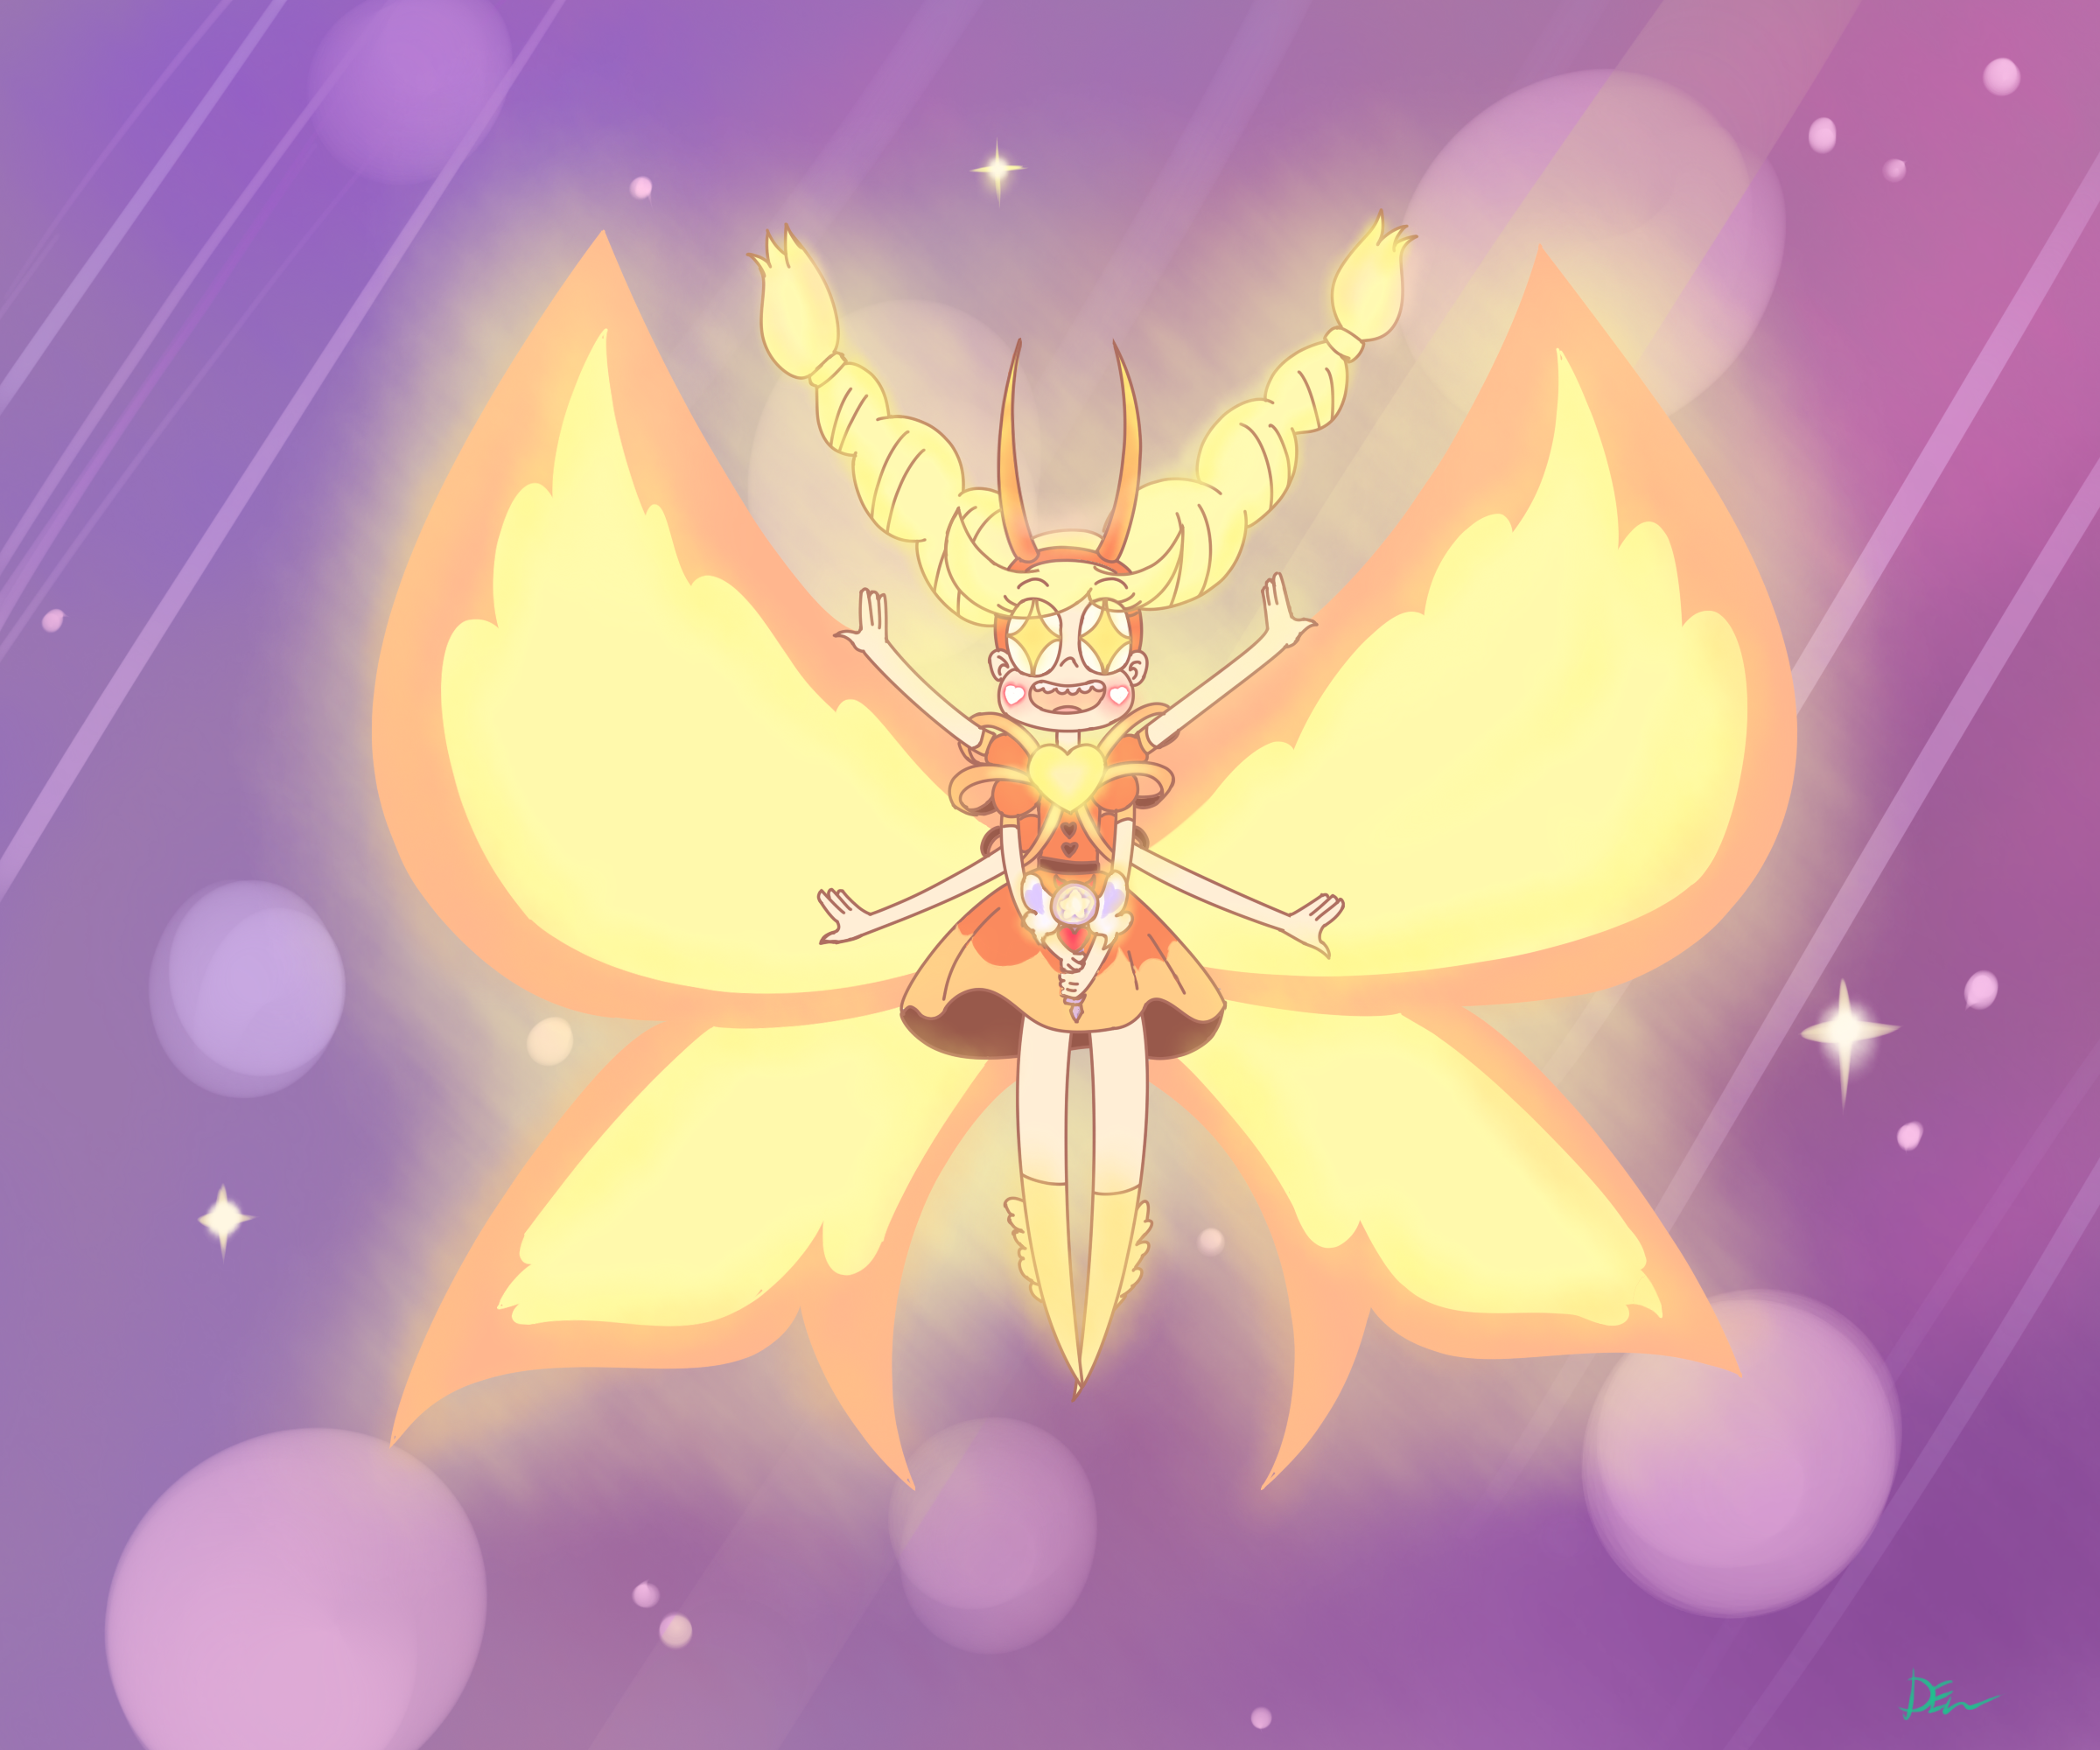 Star Vs. The Forces Of Evil: Star's Mewberty Form By